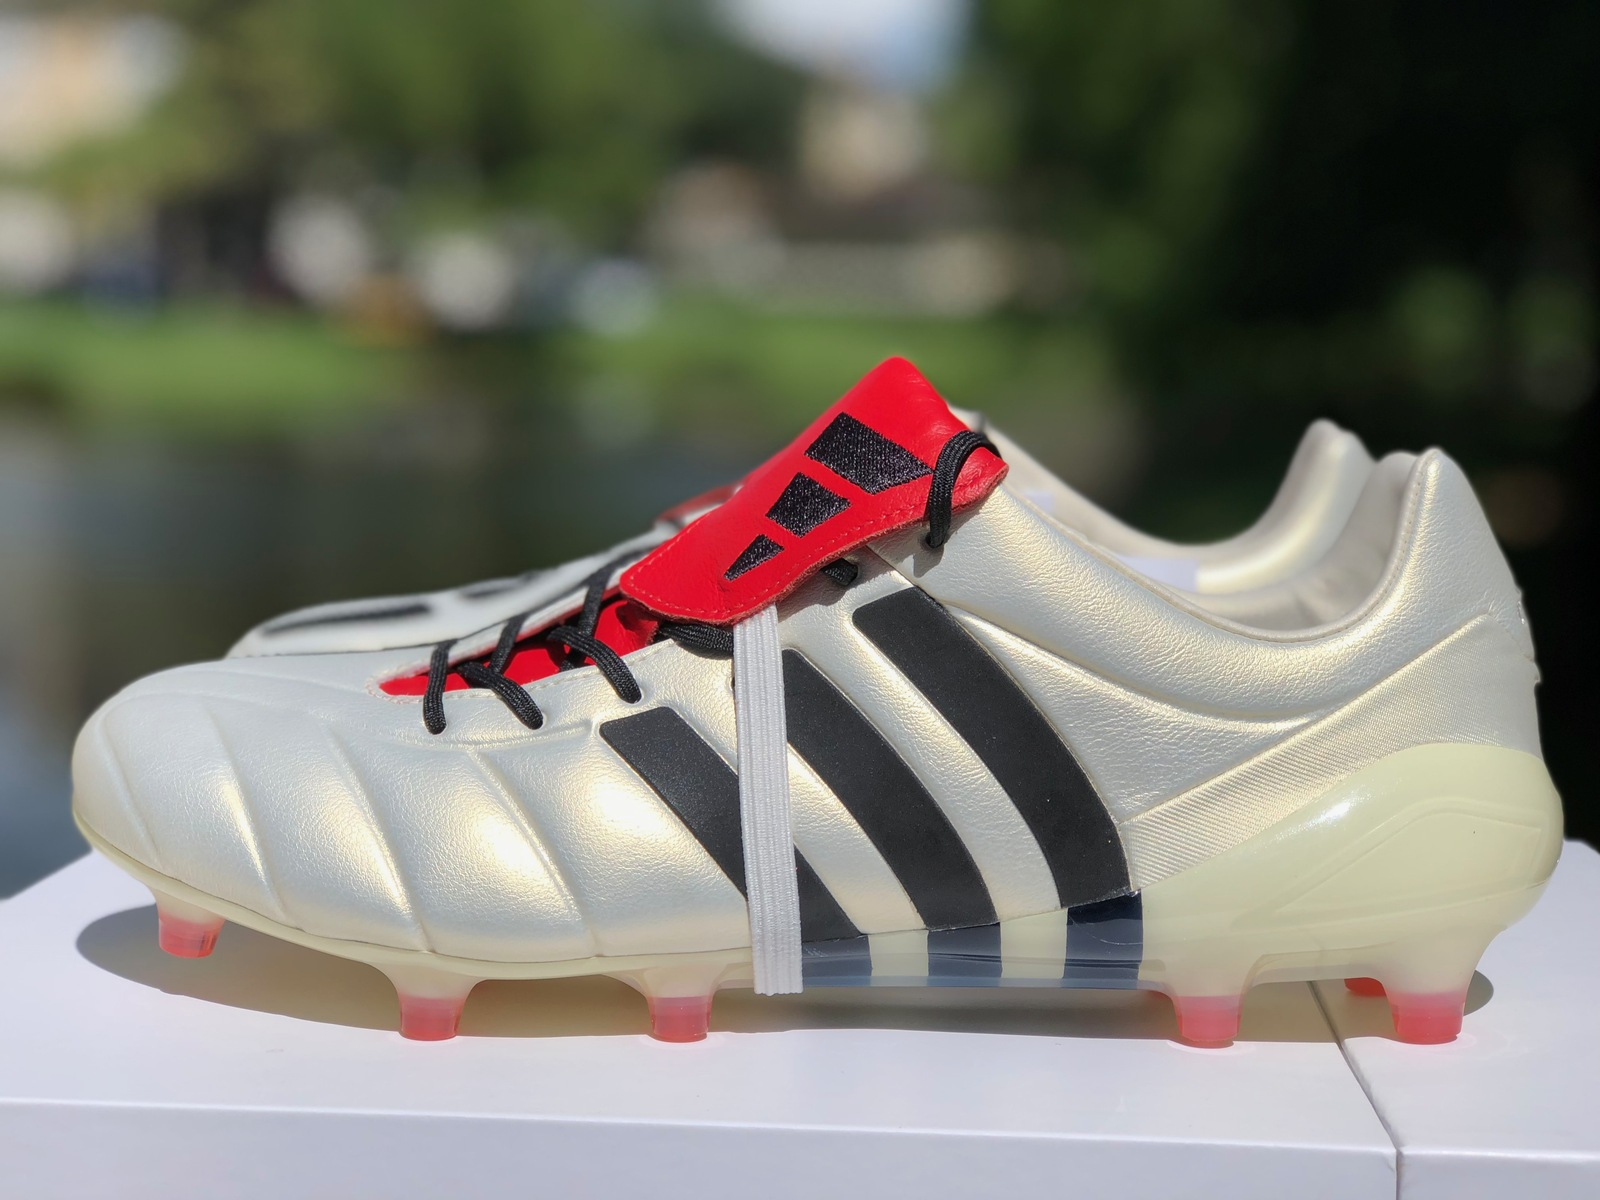 nouvelle collection 5b8a1 1e526 Adidas Predator Mania FG Champagne Remake and 50 similar items